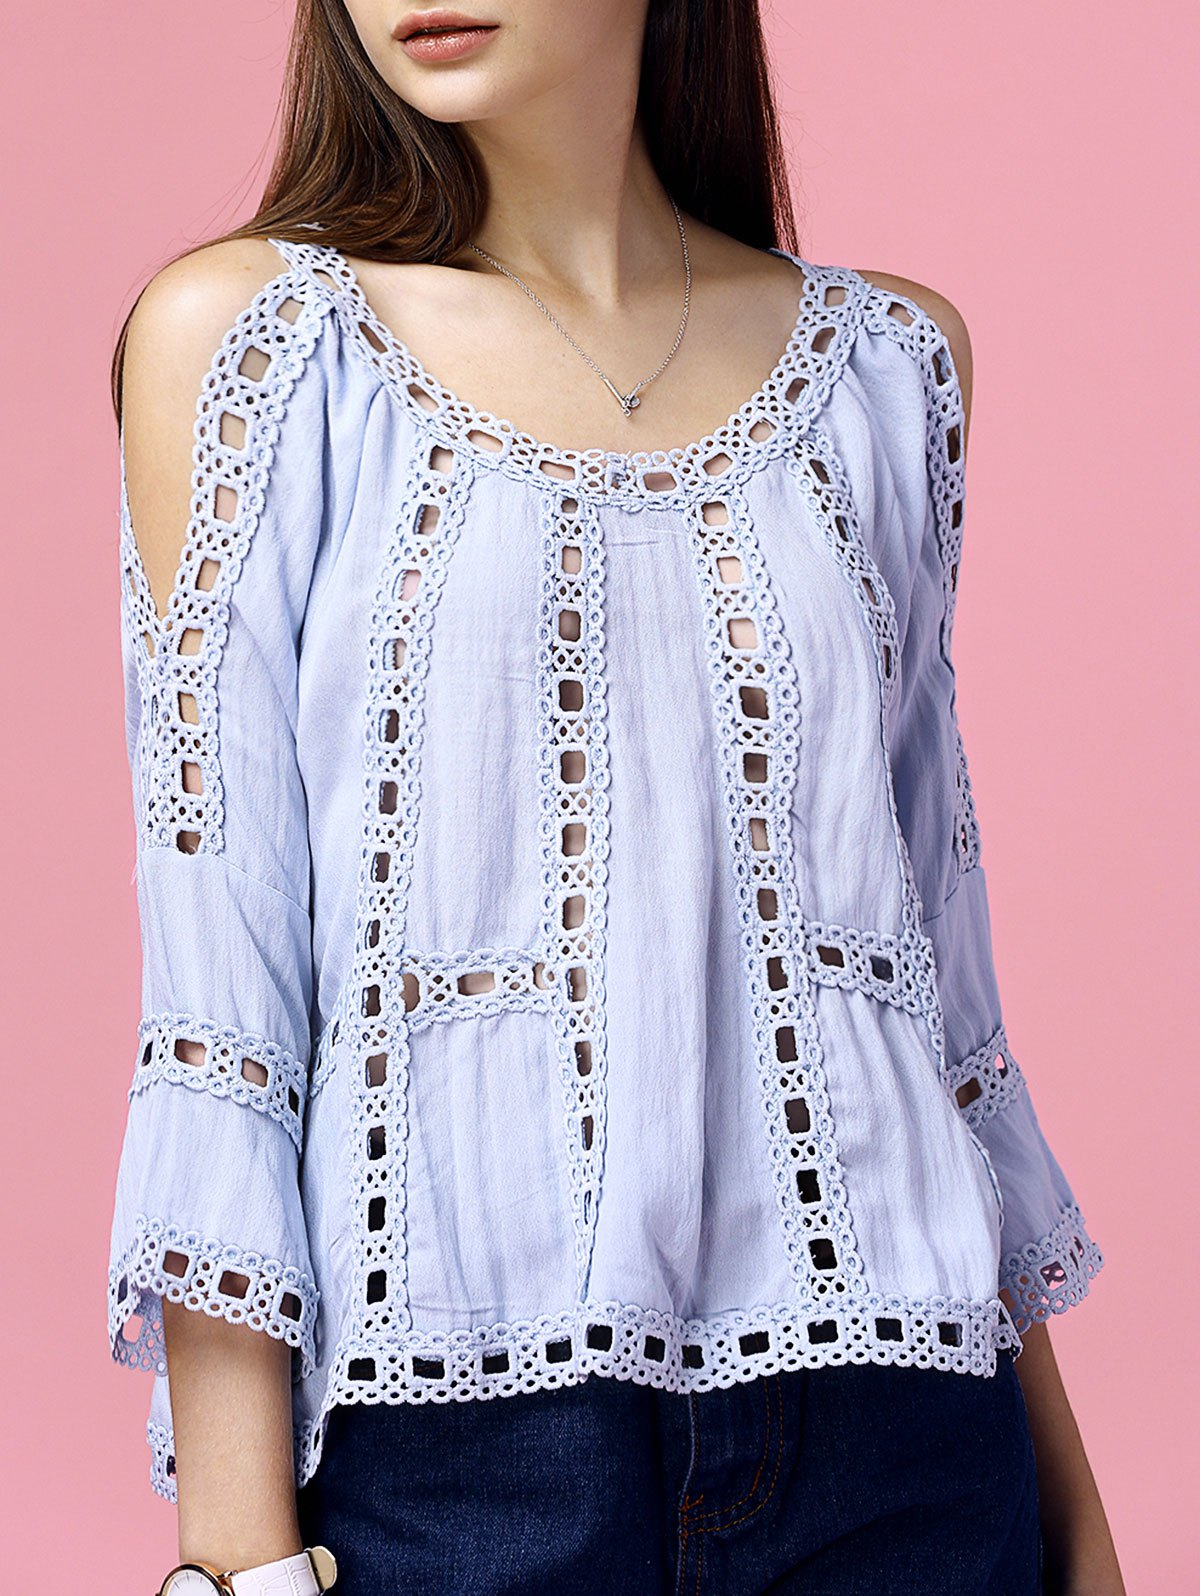 Elegant Women's Blue Cold Shoulder Hollow Out Crochet Blouse - LIGHT BLUE S